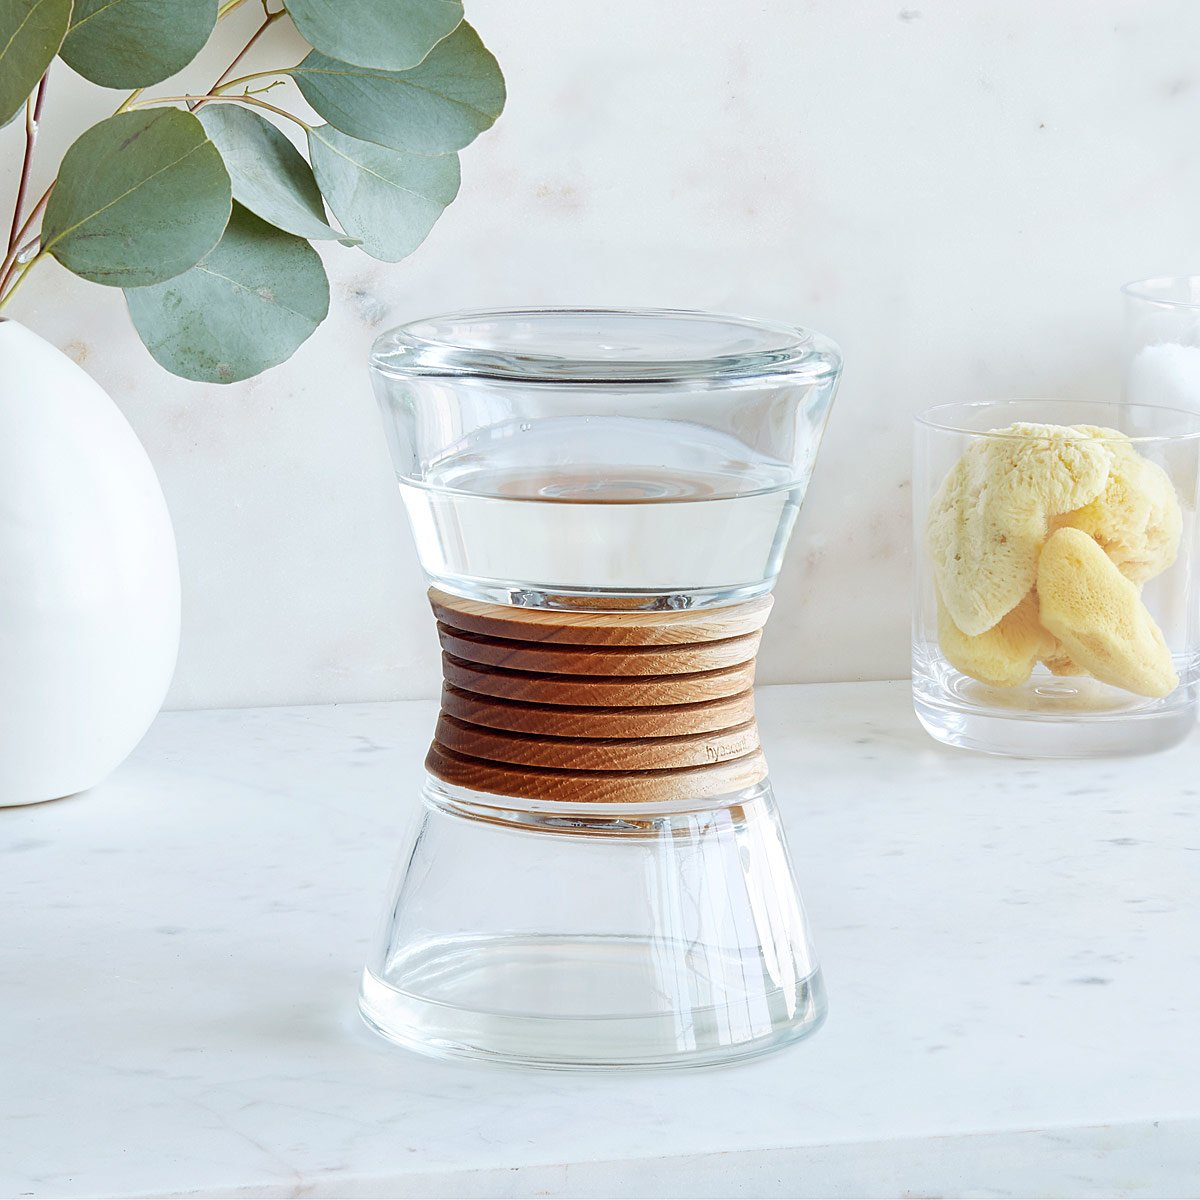 Hourglass Oil Diffuser | UncommonGoods